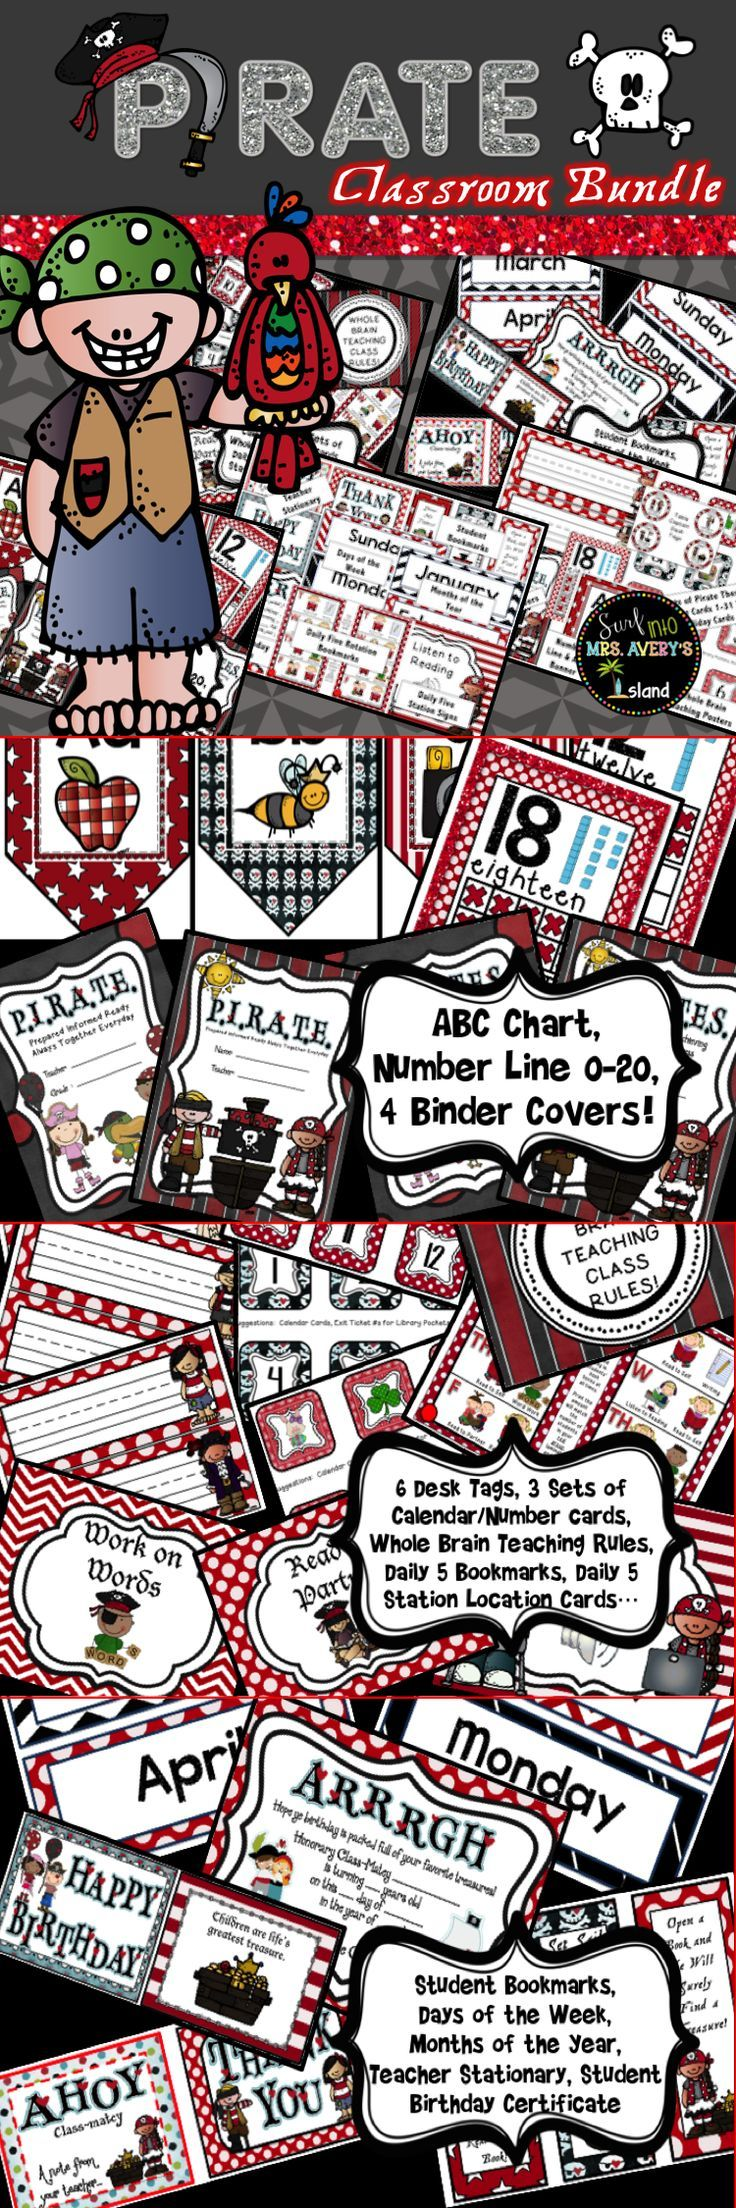 """This pirate themed classroom decor packet is full of classroom essentials for elementary teachers.  These creative printables will help teachers with organizing their classroom, and students will LOVE the pirate theme!  Click here for creative ideas and tips and give your classroom a """"one of a kind"""" flair that can't be bought at a school supply store anywhere!"""